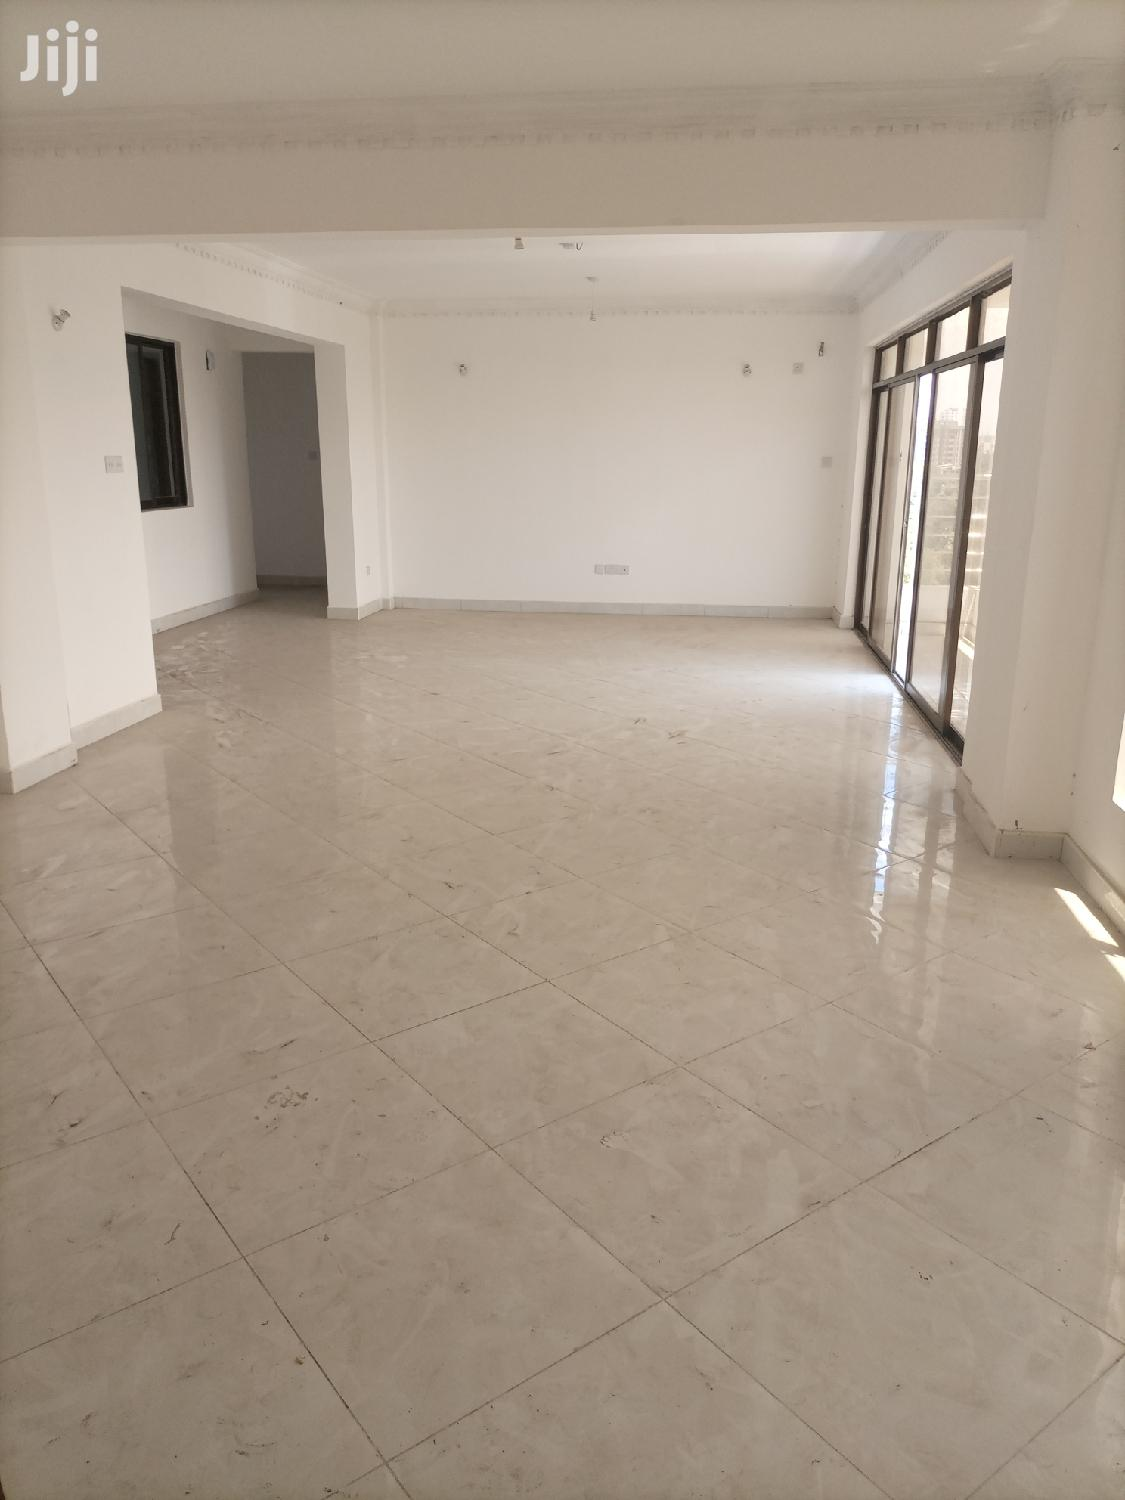 Tudor For Sale:4br Seaview Brand New All Ensuite Flat.